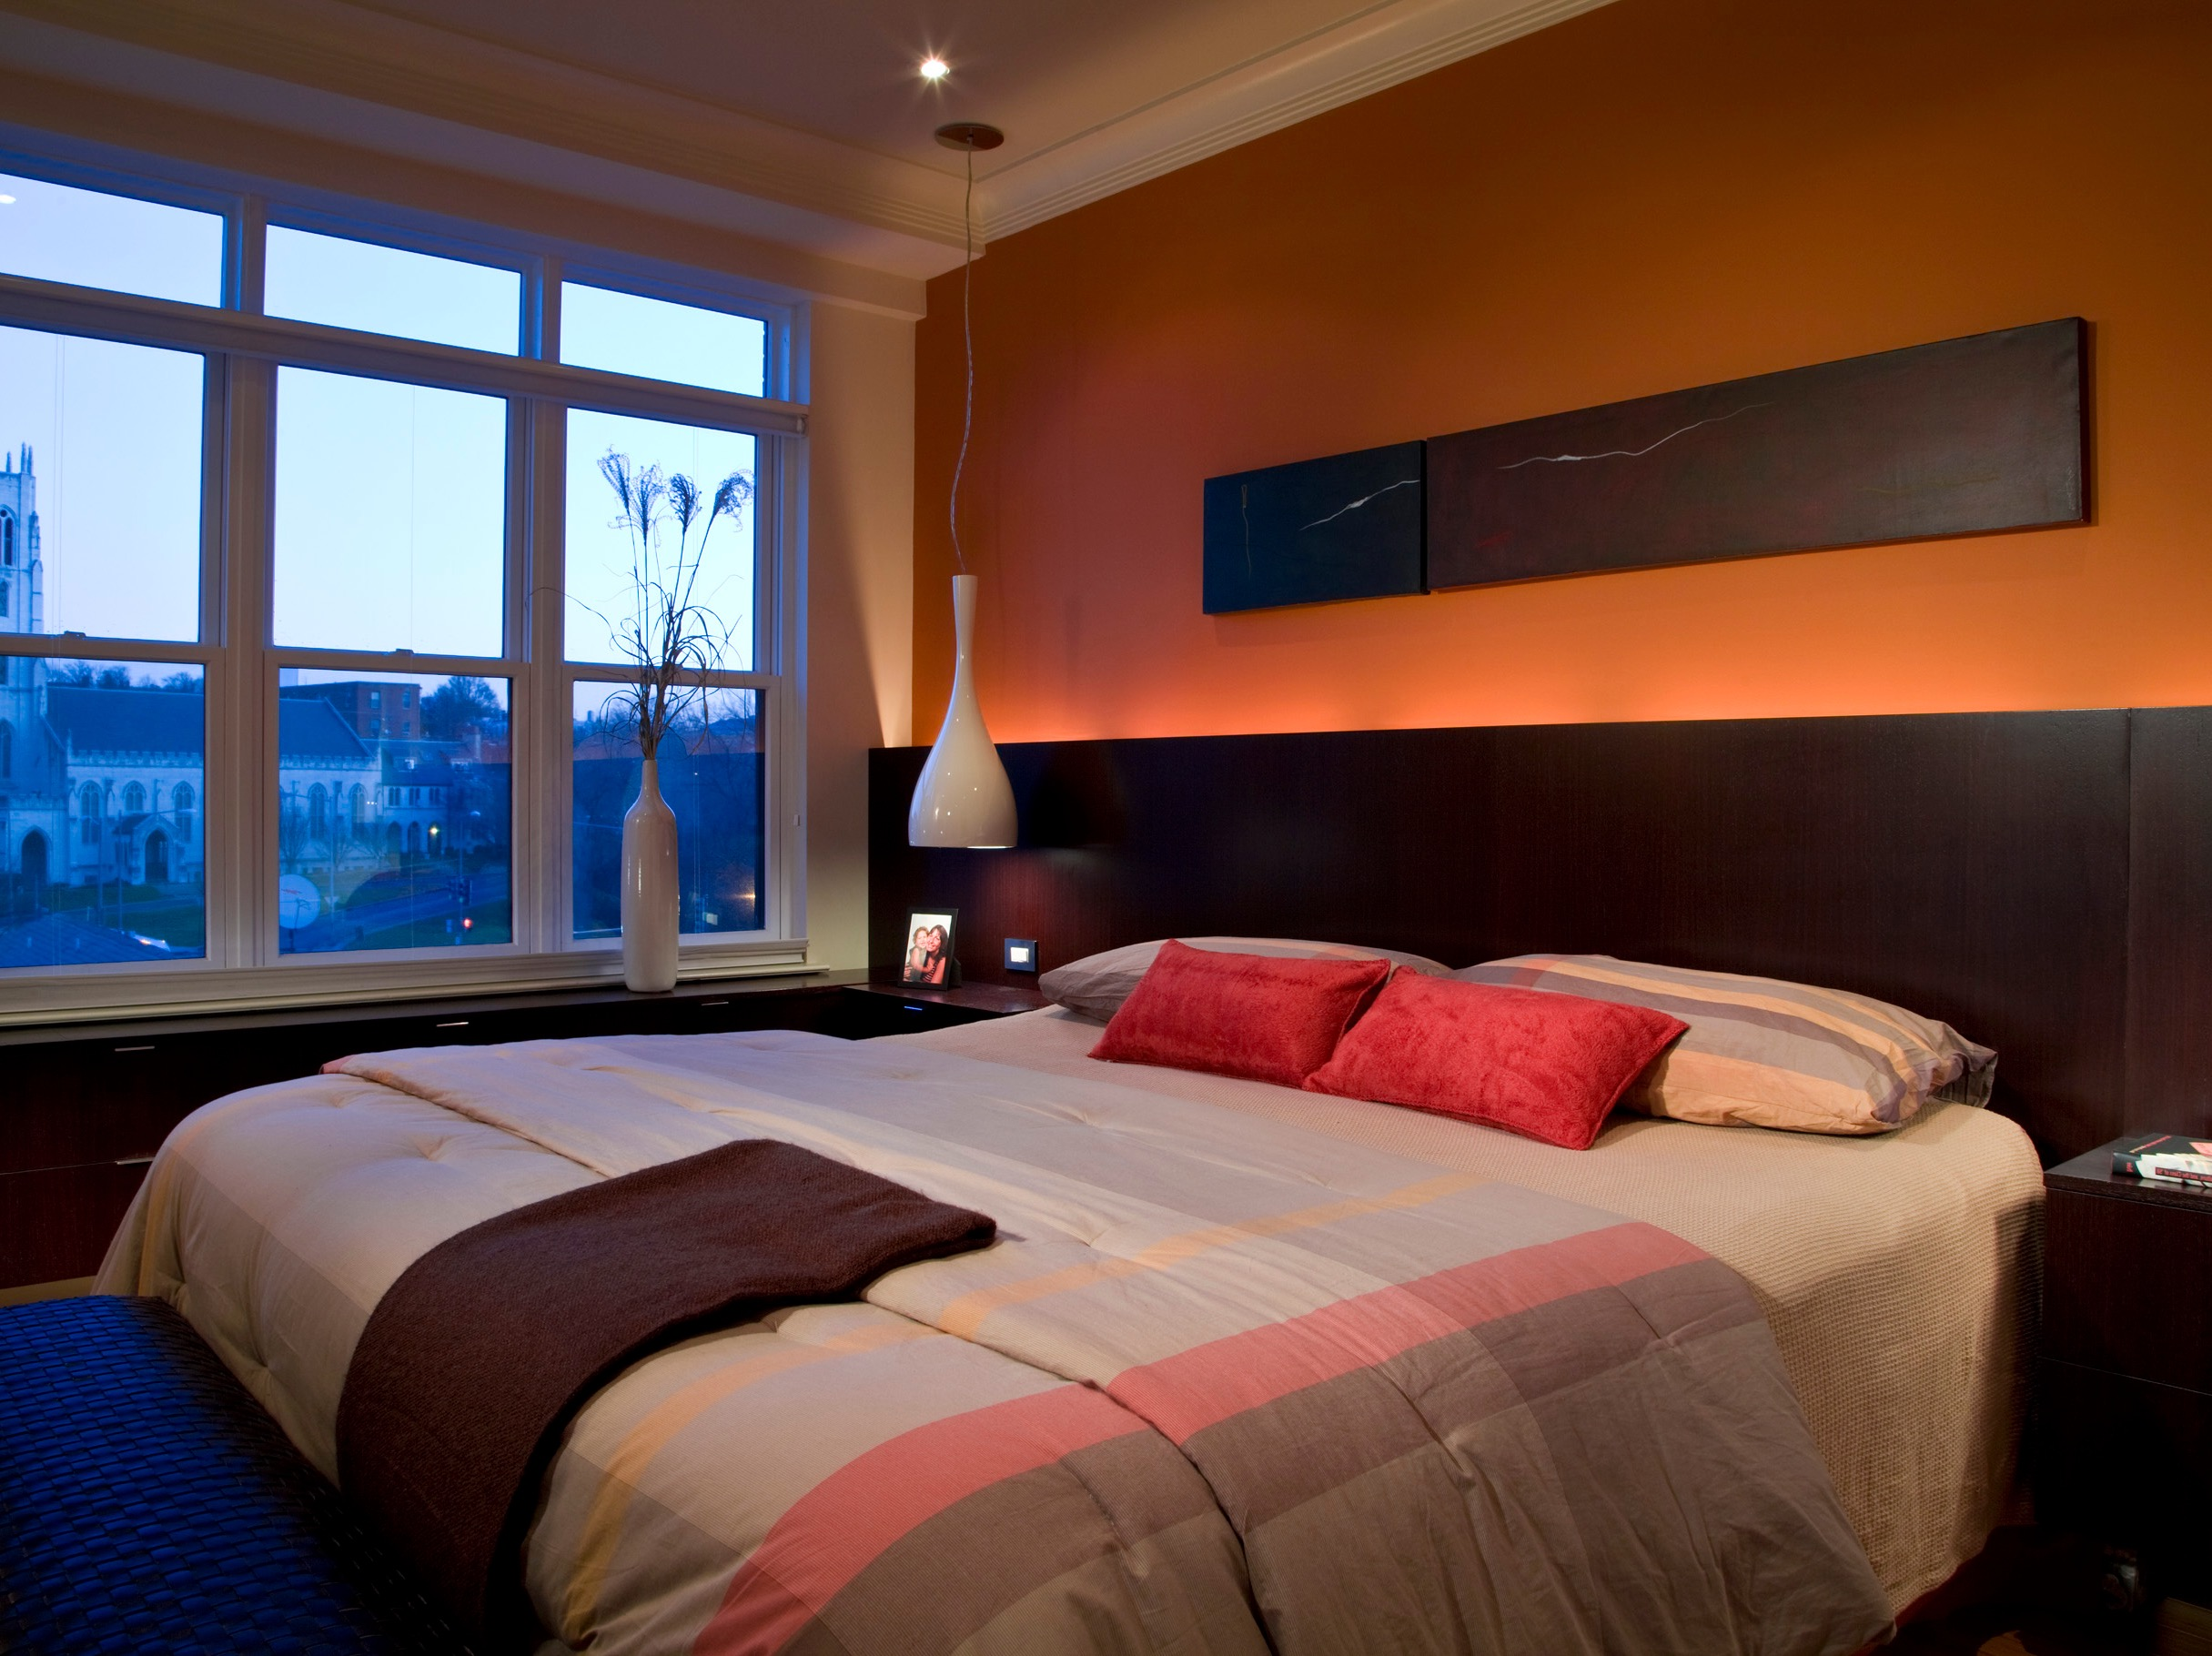 Masculine Orange Bedroom Color With Dramatic Lighting (View 19 of 22)